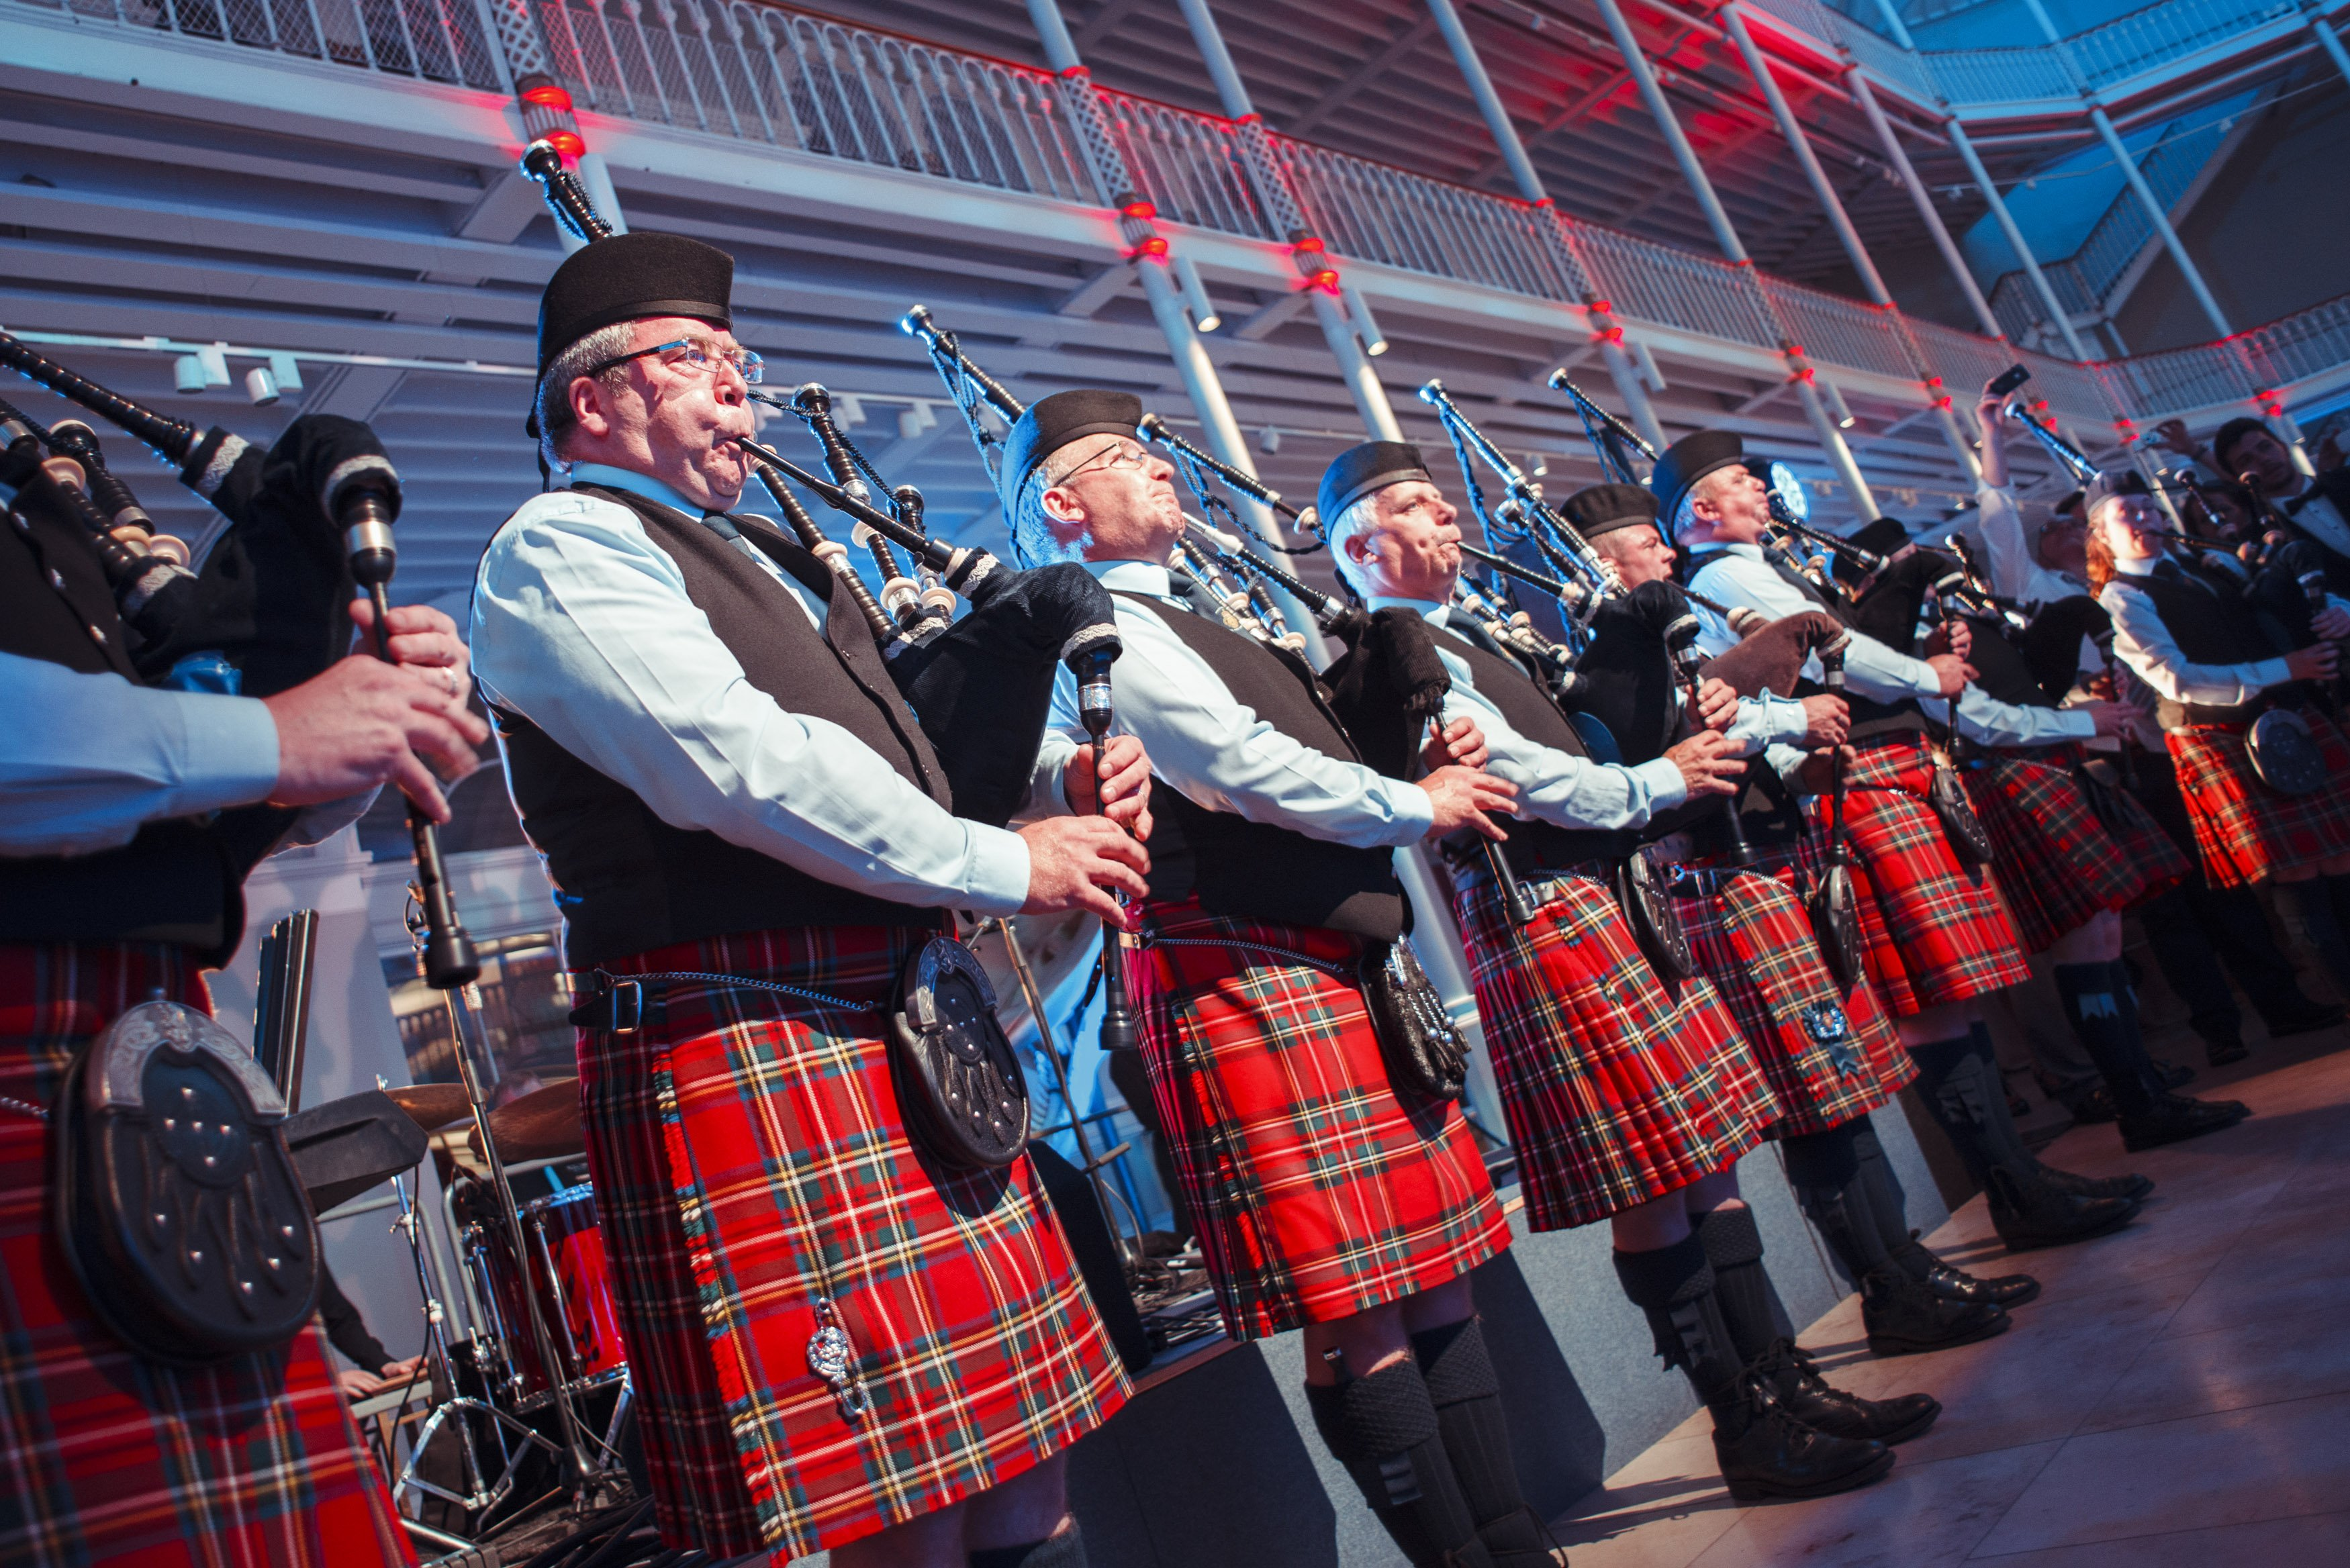 Reel Time Musicians - Pipe Bands at Meeting and Incentive Forum, Edinburgh